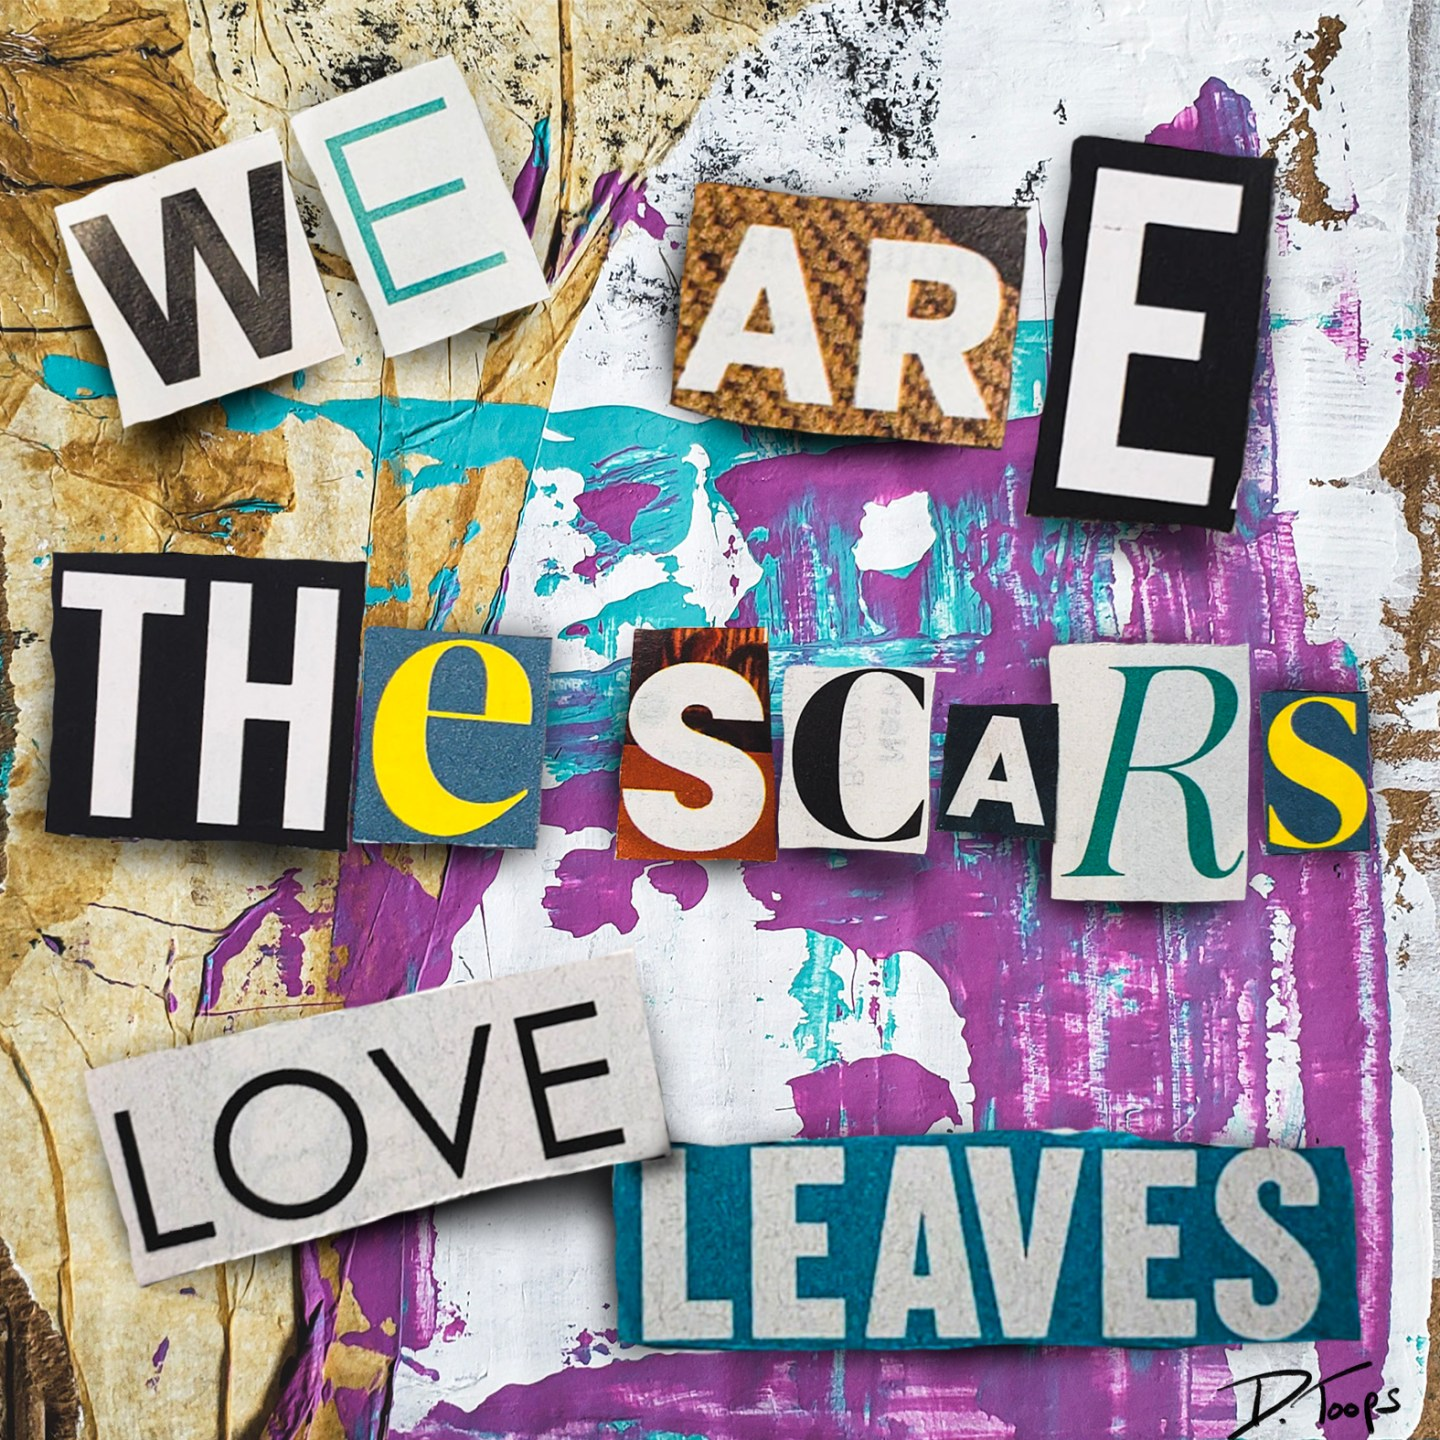 We are the scars love leaves…